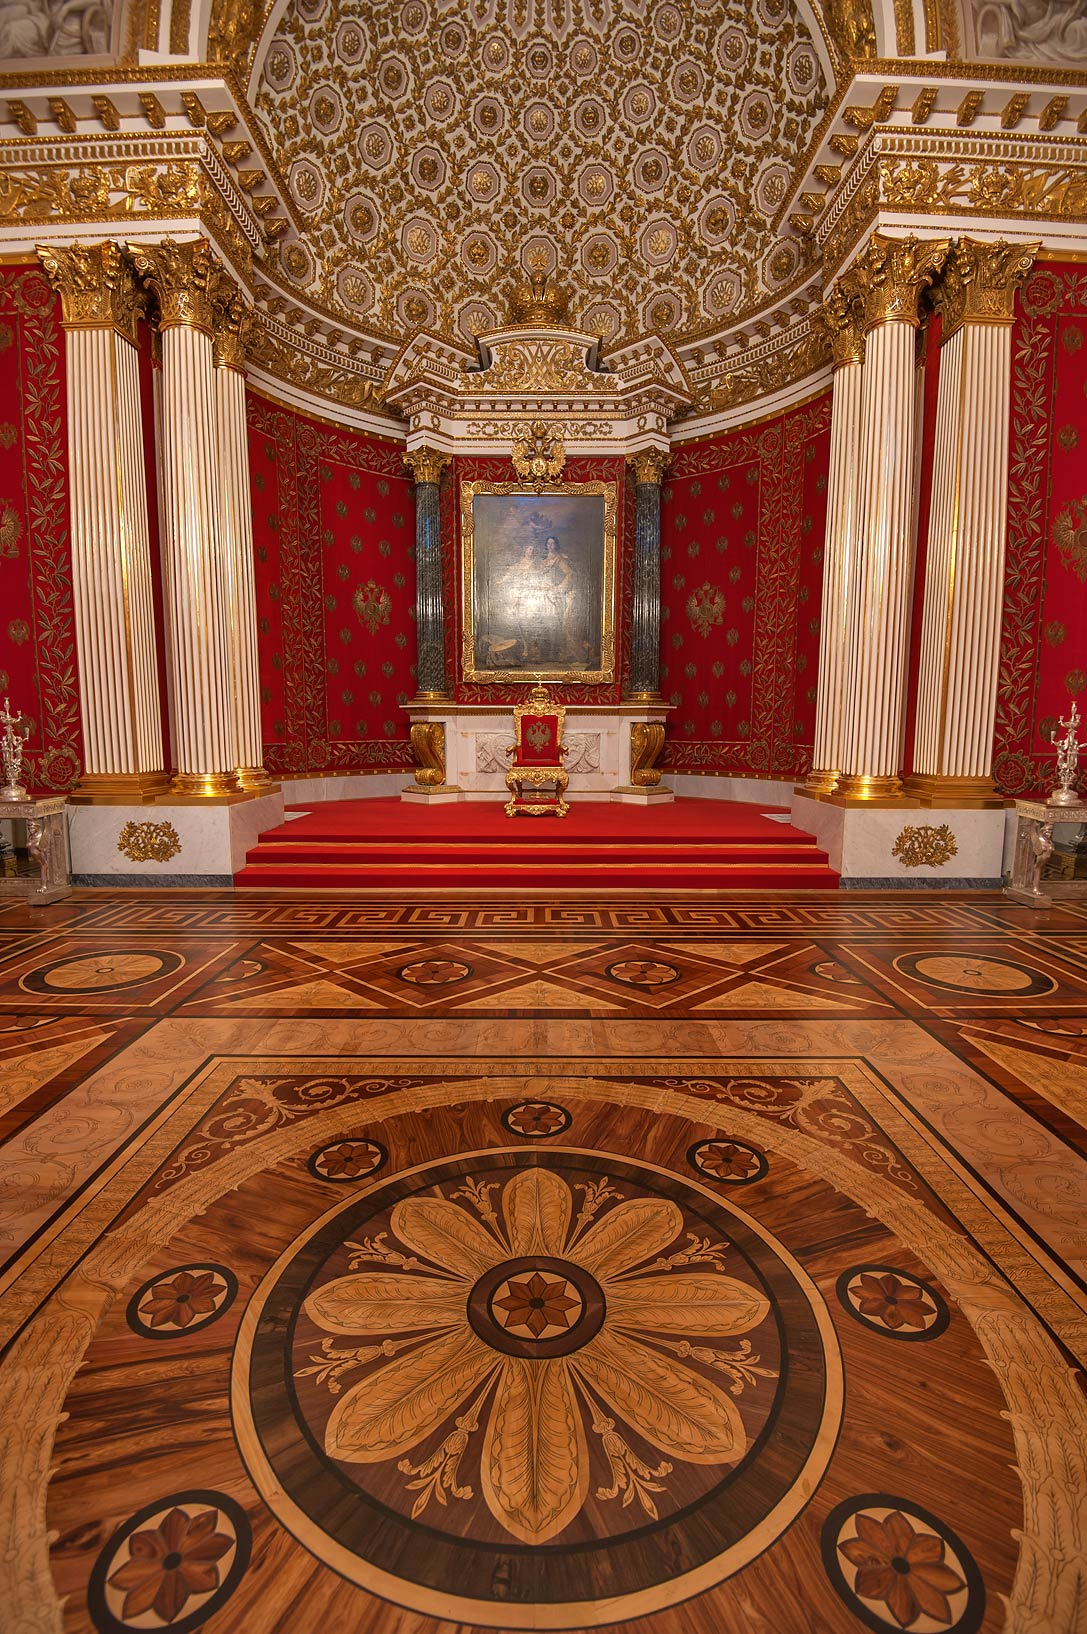 Crimson Room in Hermitage Museum. St.Petersburg, Russia